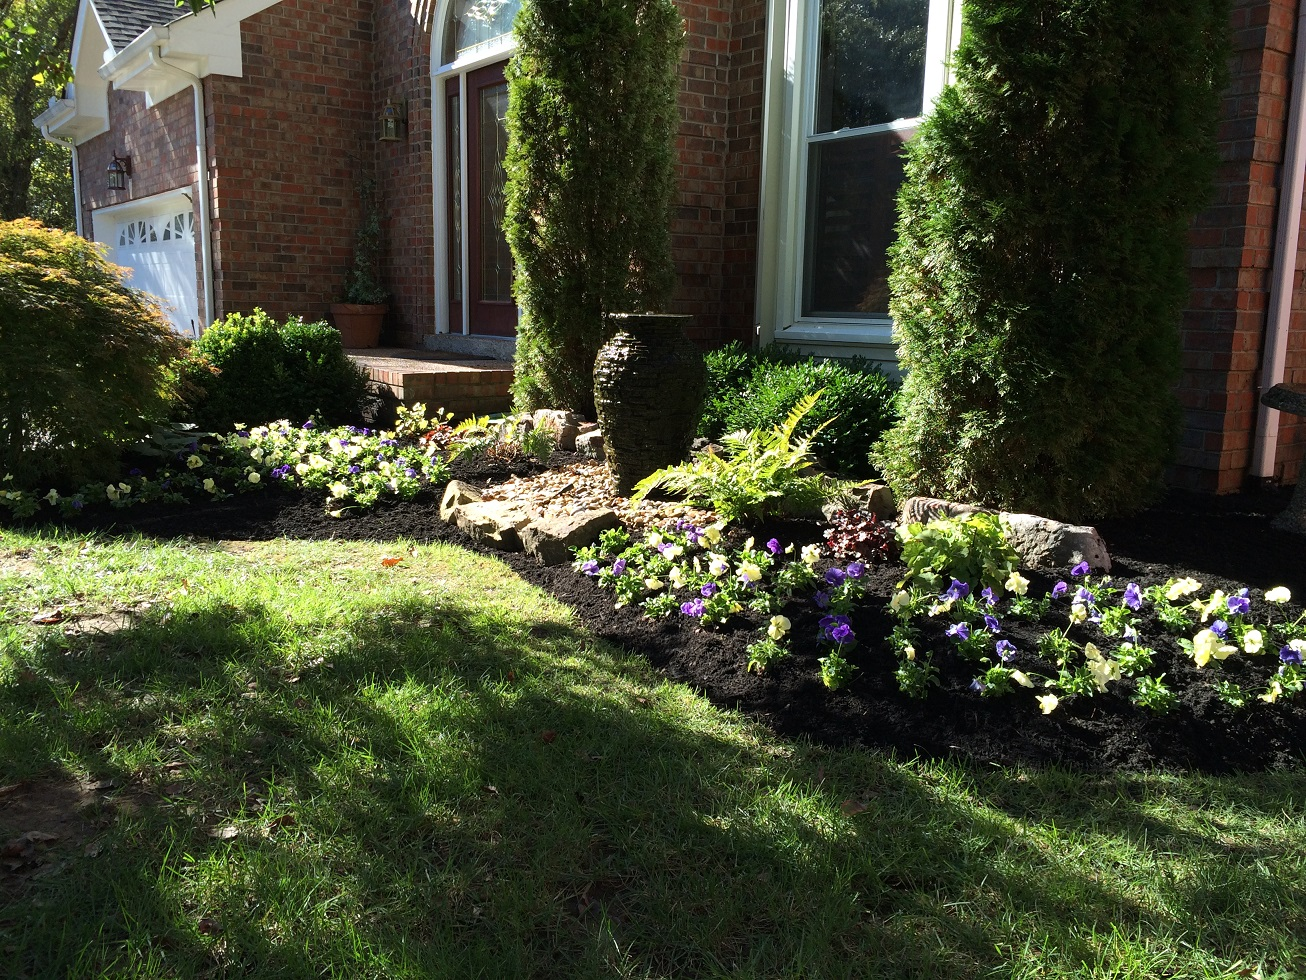 Landscaping and landscaping ideas jvi secret gardens for Landscaping options